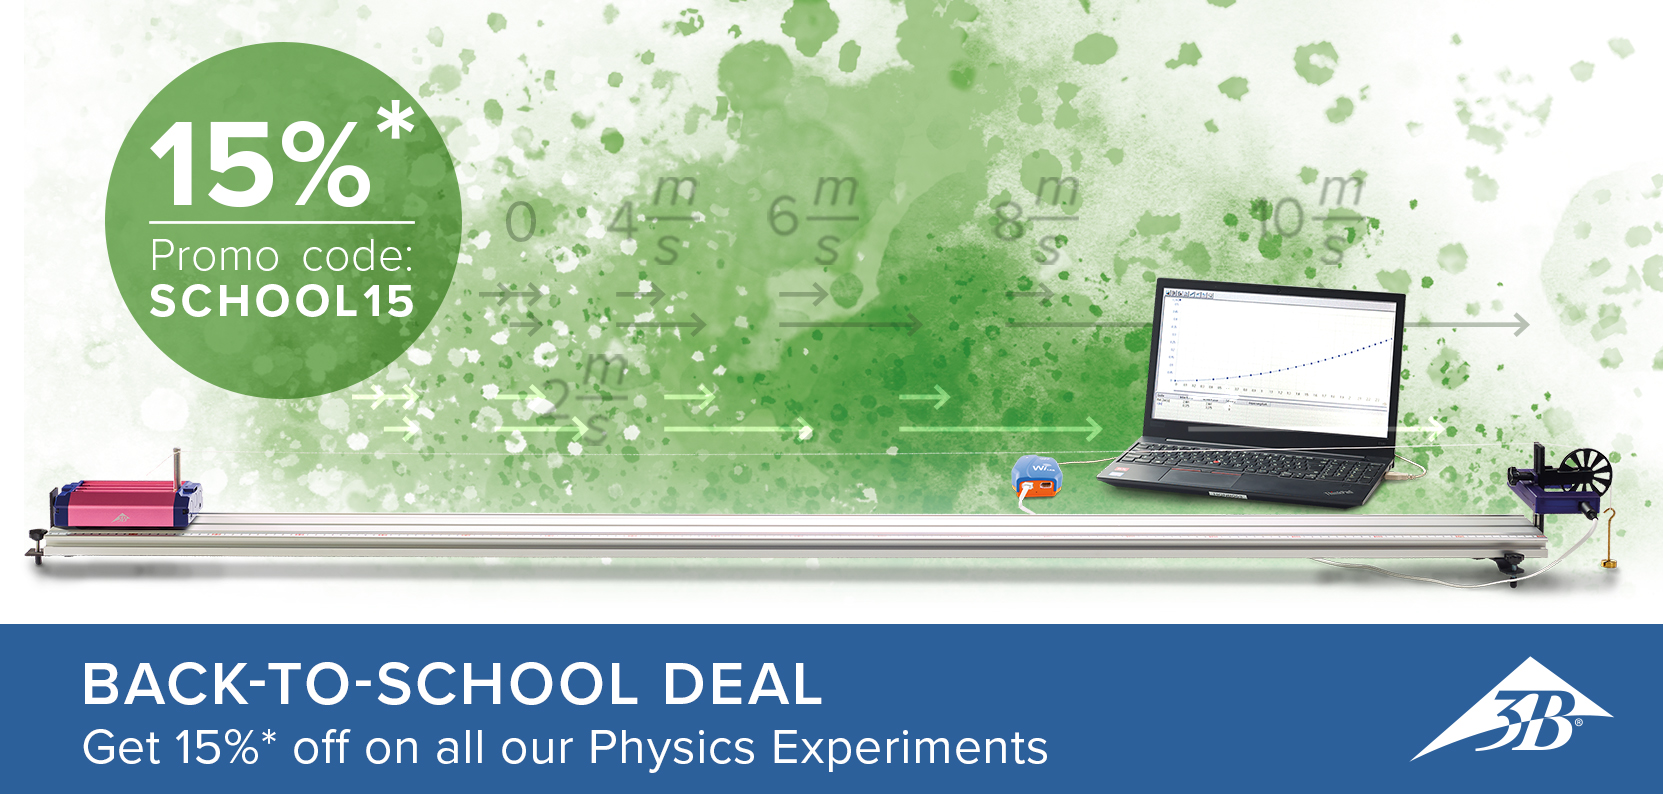 3B Scientific Back to School Promotion